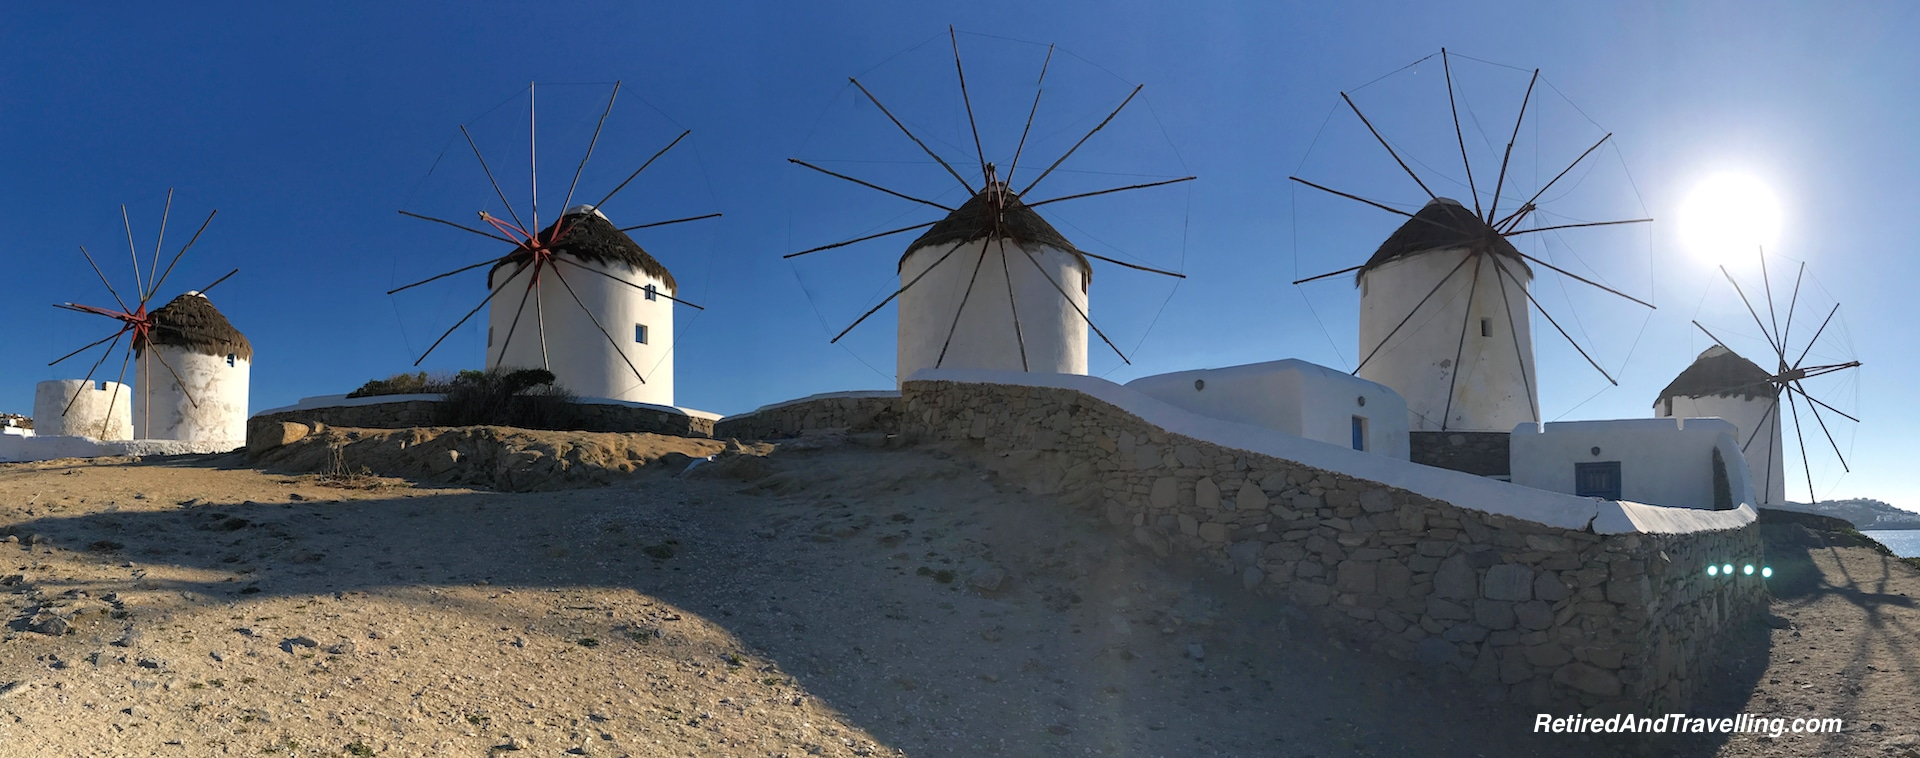 Windmills on the Hill - Iconic Views of Santorini and Mykonos.jpg